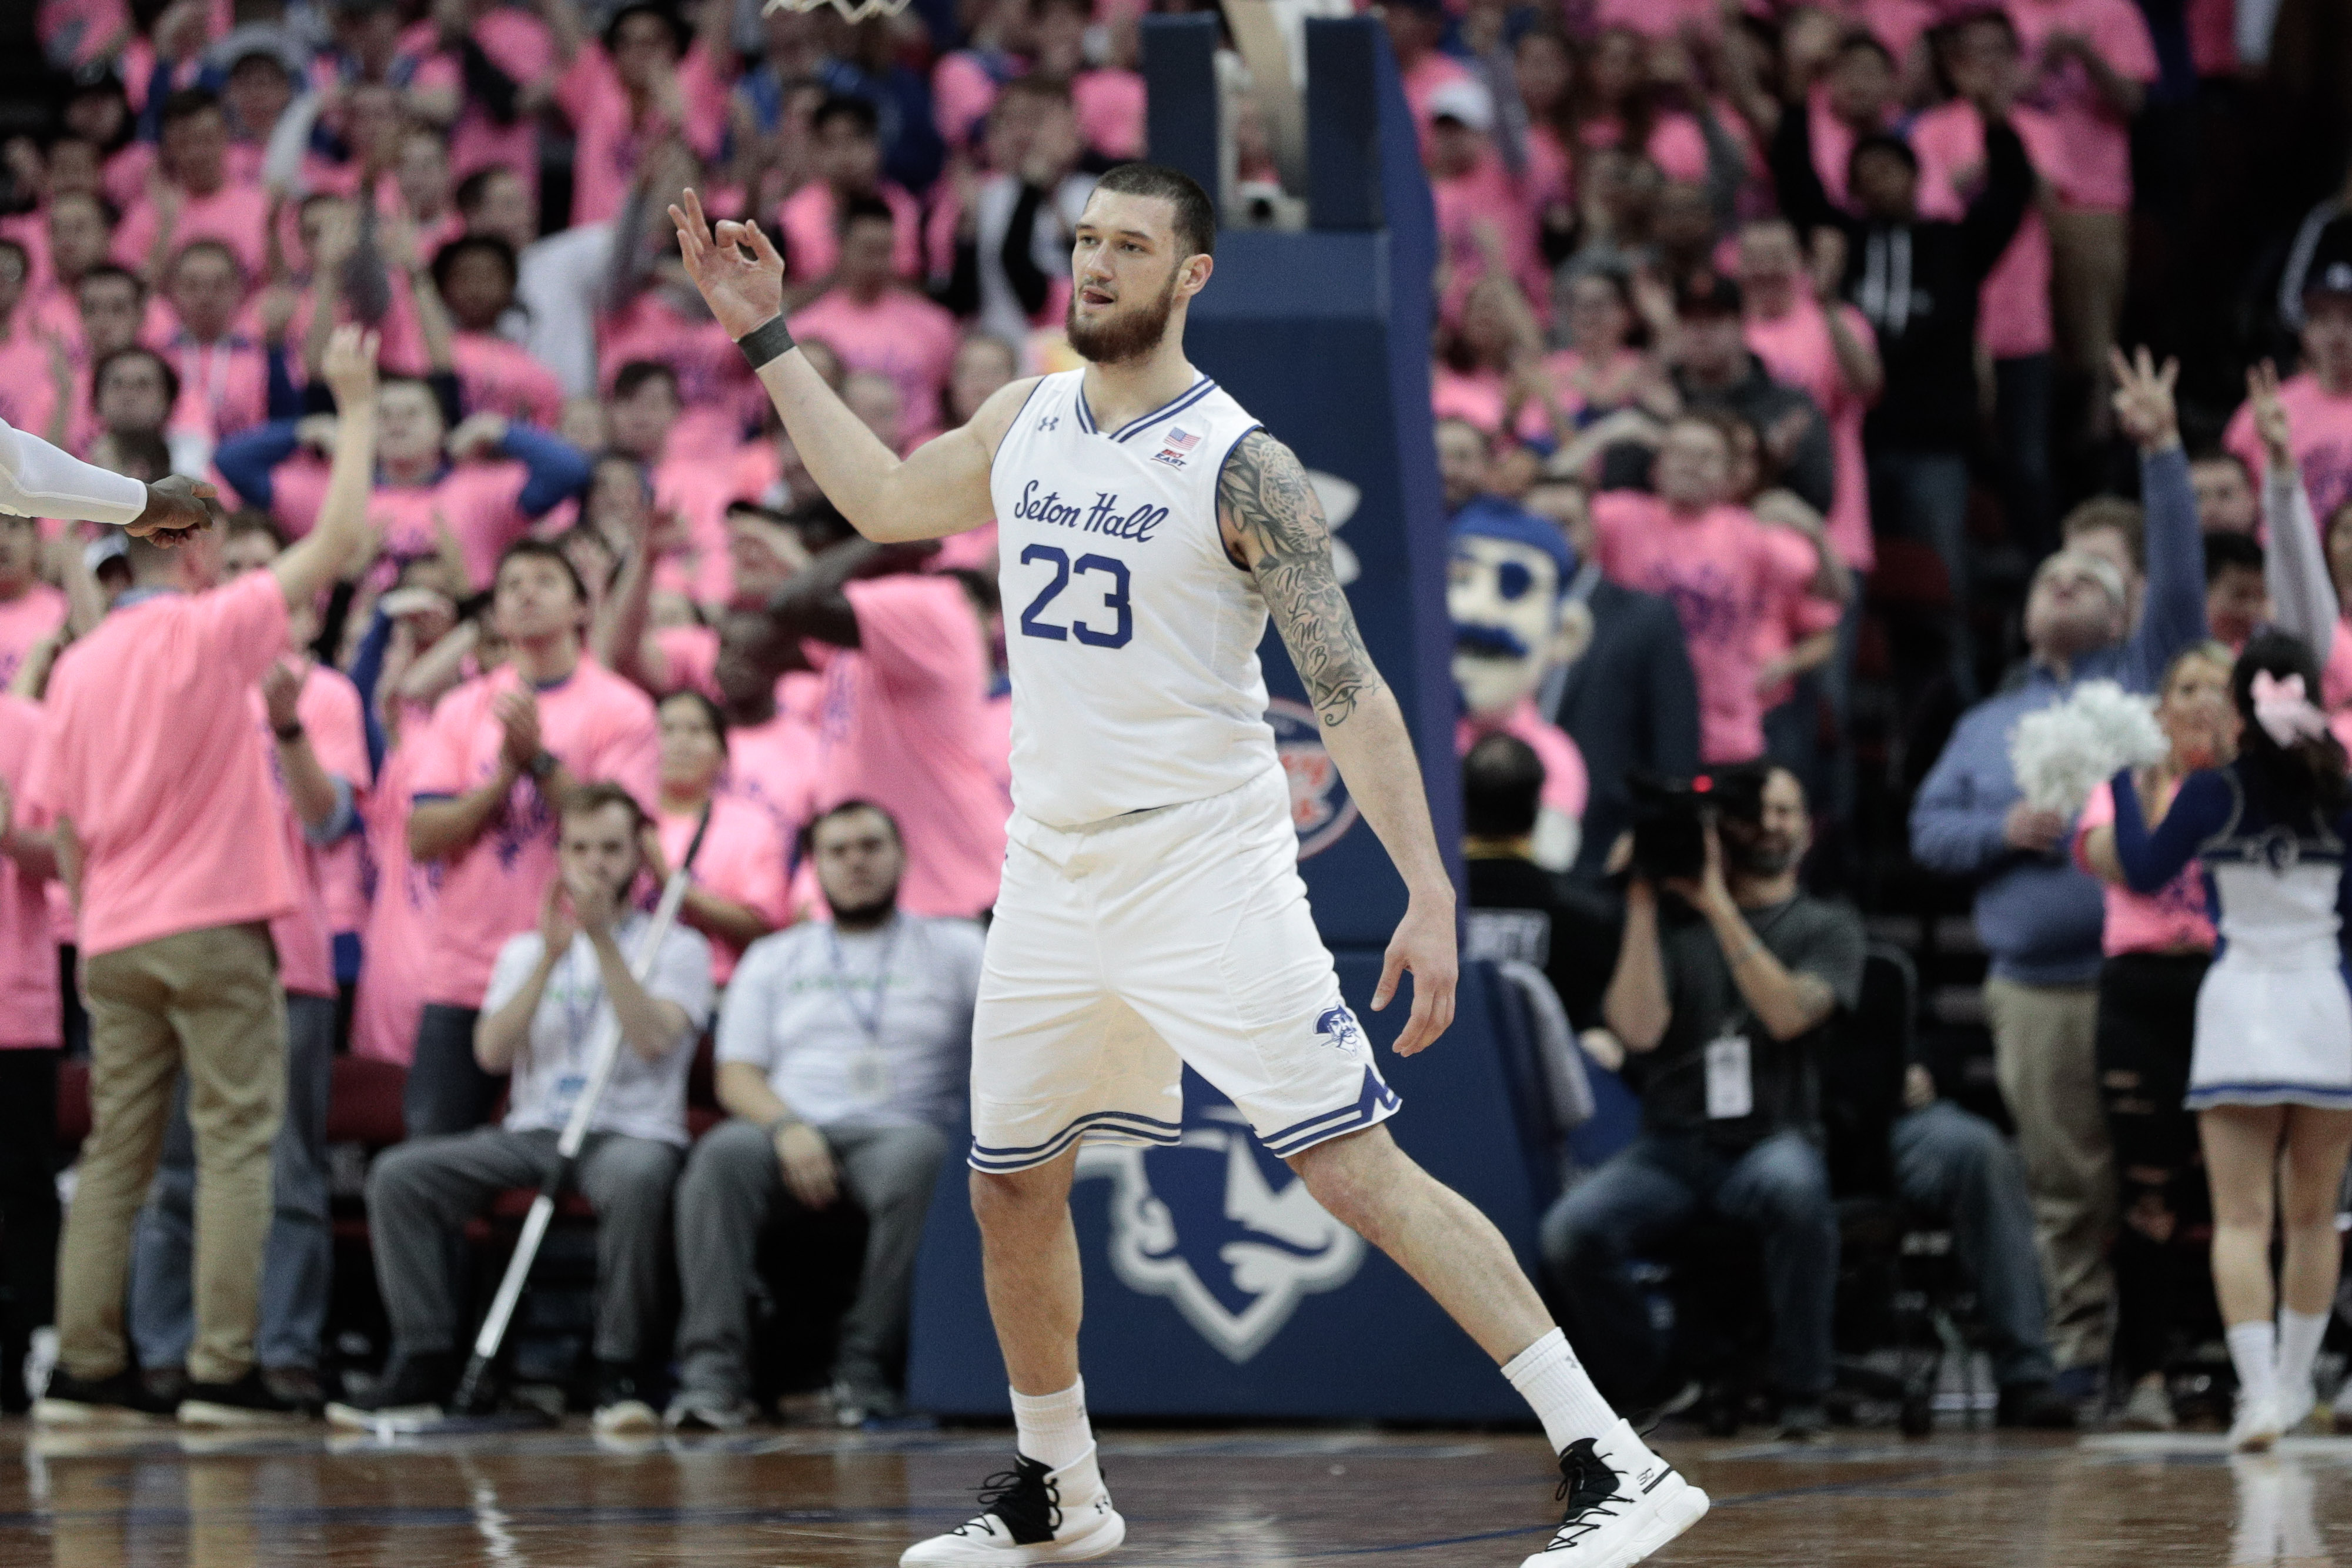 Feb 19, 2020; Newark, New Jersey, USA; Seton Hall Pirates forward Sandro Mamukelashvili (23) reacts after scoring a three point basket during the second half against the Butler Bulldogs at Prudential Center.